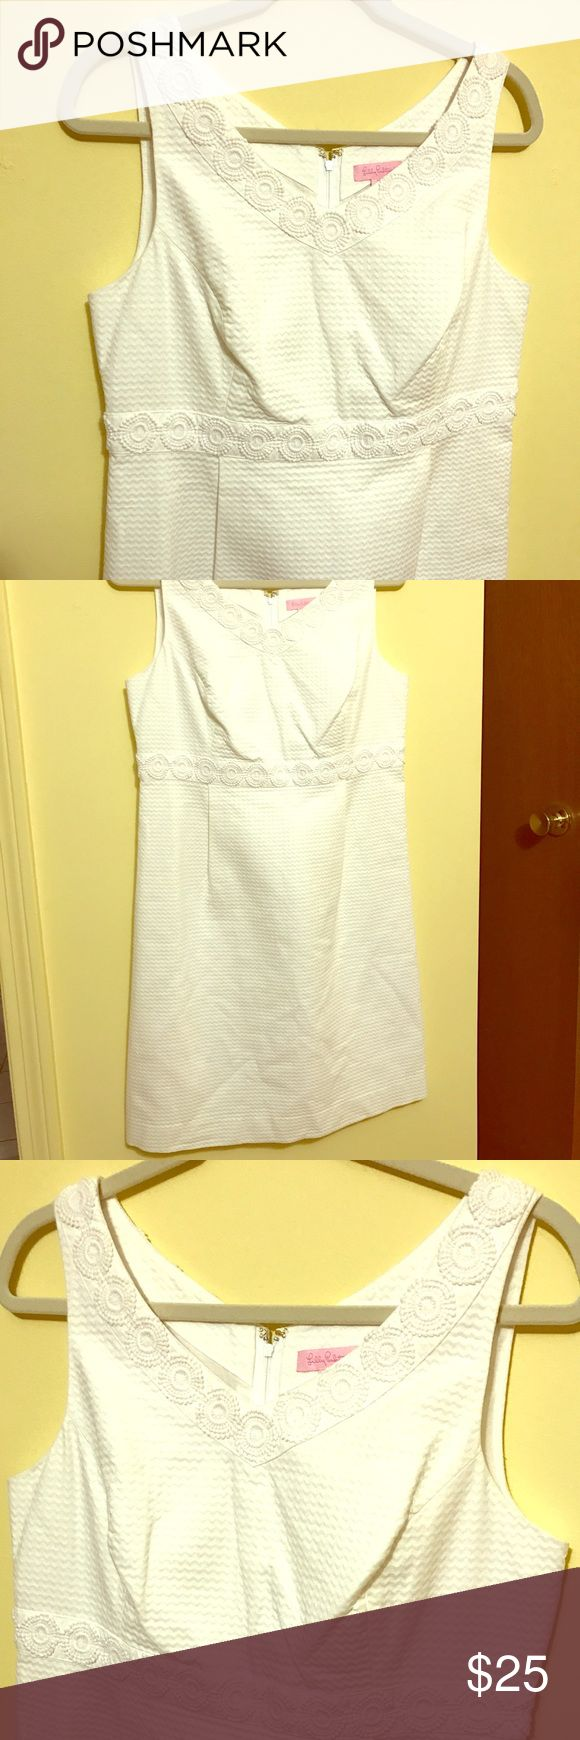 Lilly Pulitzer White Dress Sz 10 No tags and a few years old, but has never been worn! Lilly Pulitzer Dresses